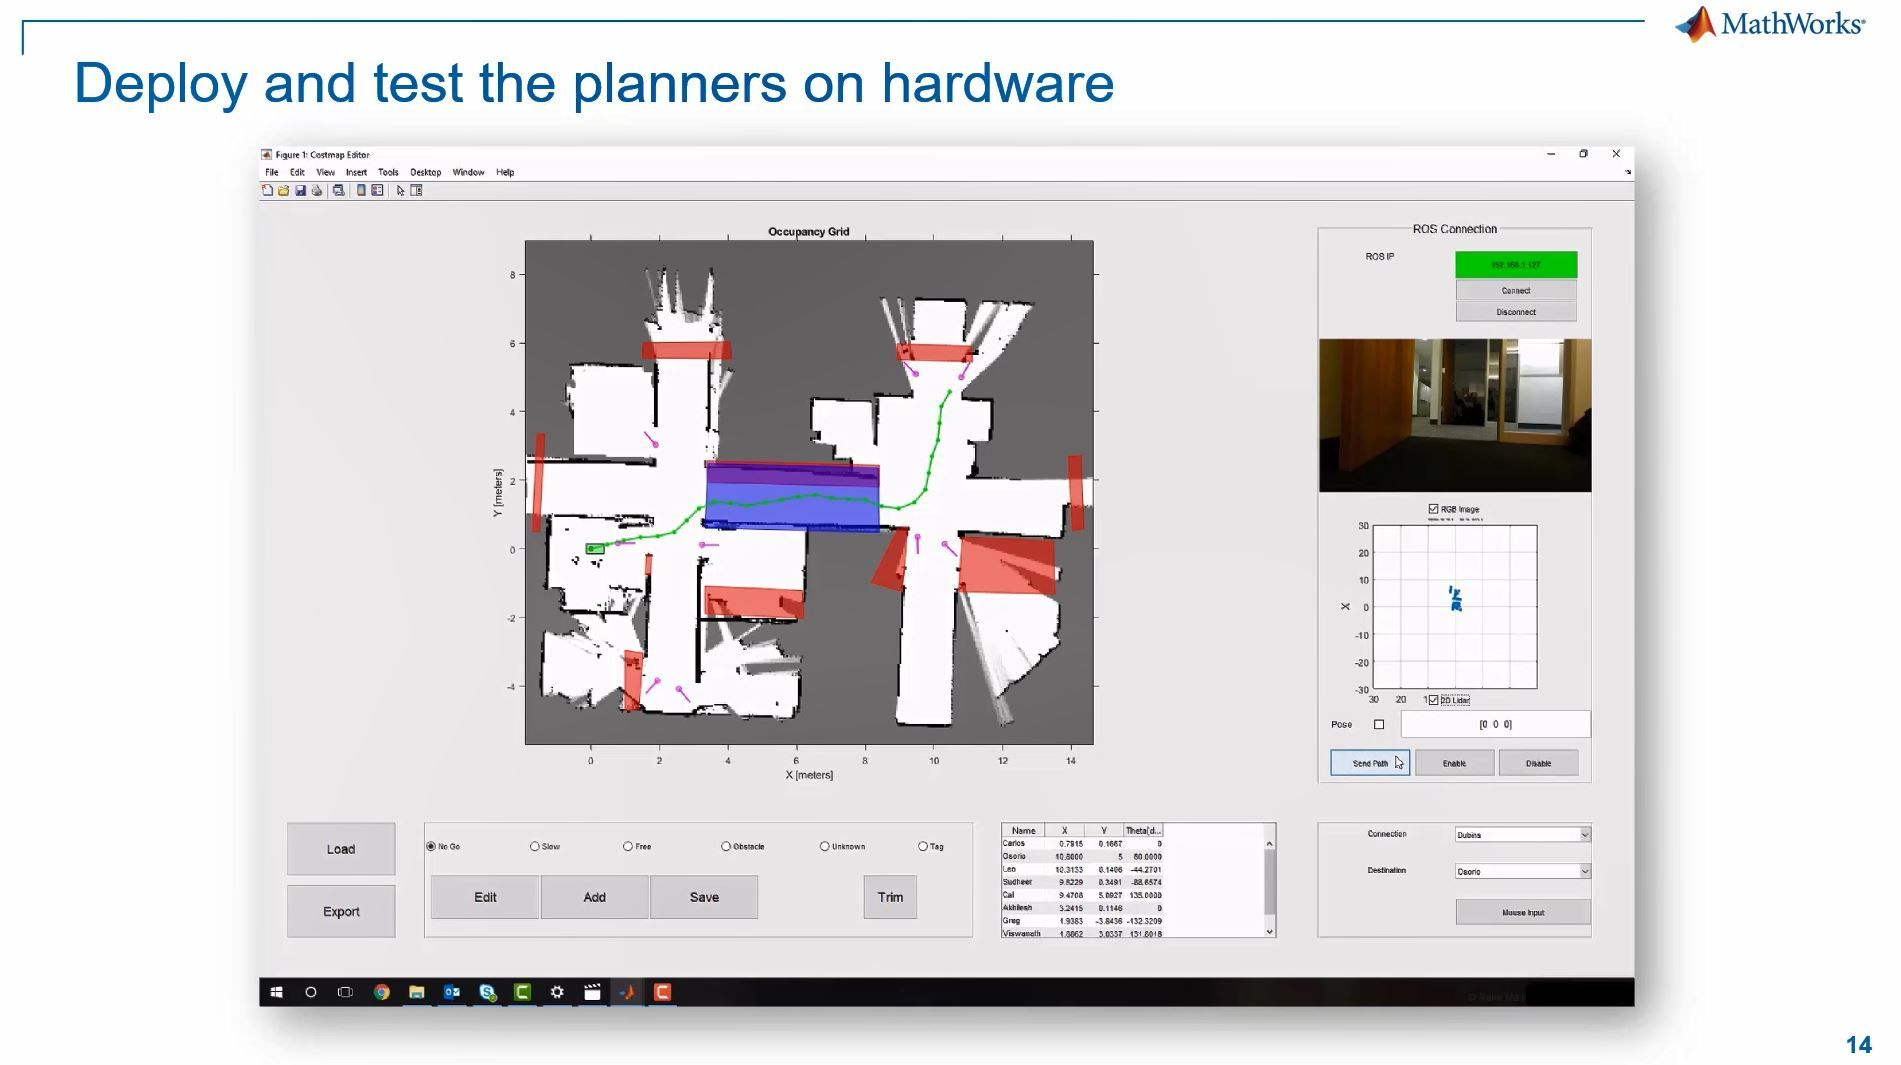 Learn how to use the rapidly-exploring random tree (RRT) algorithm to plan paths for mobile robots through known maps. Watch how to tune the planners with custom state spaces and motion models.